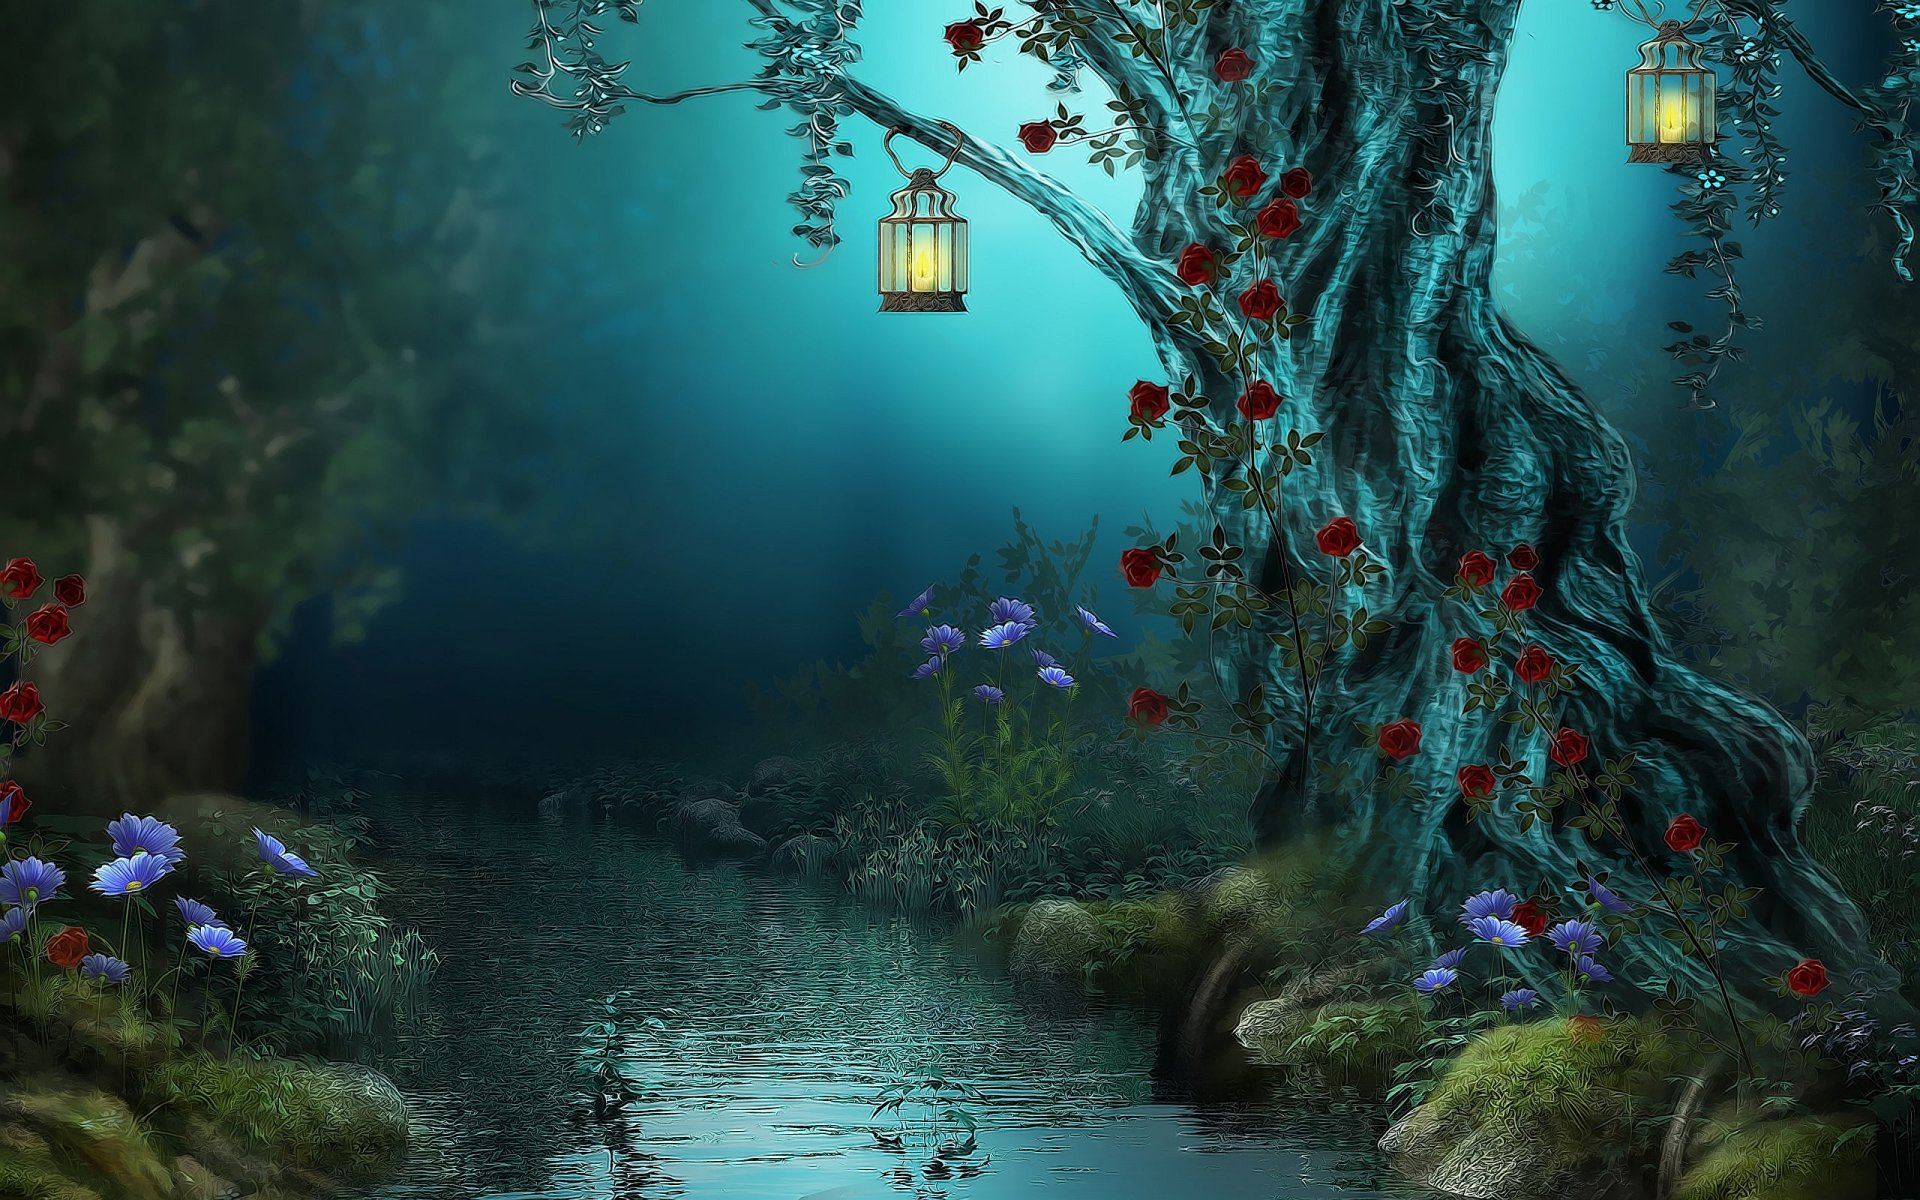 Fantasy - Artistic  Forest Magic River Wallpaper